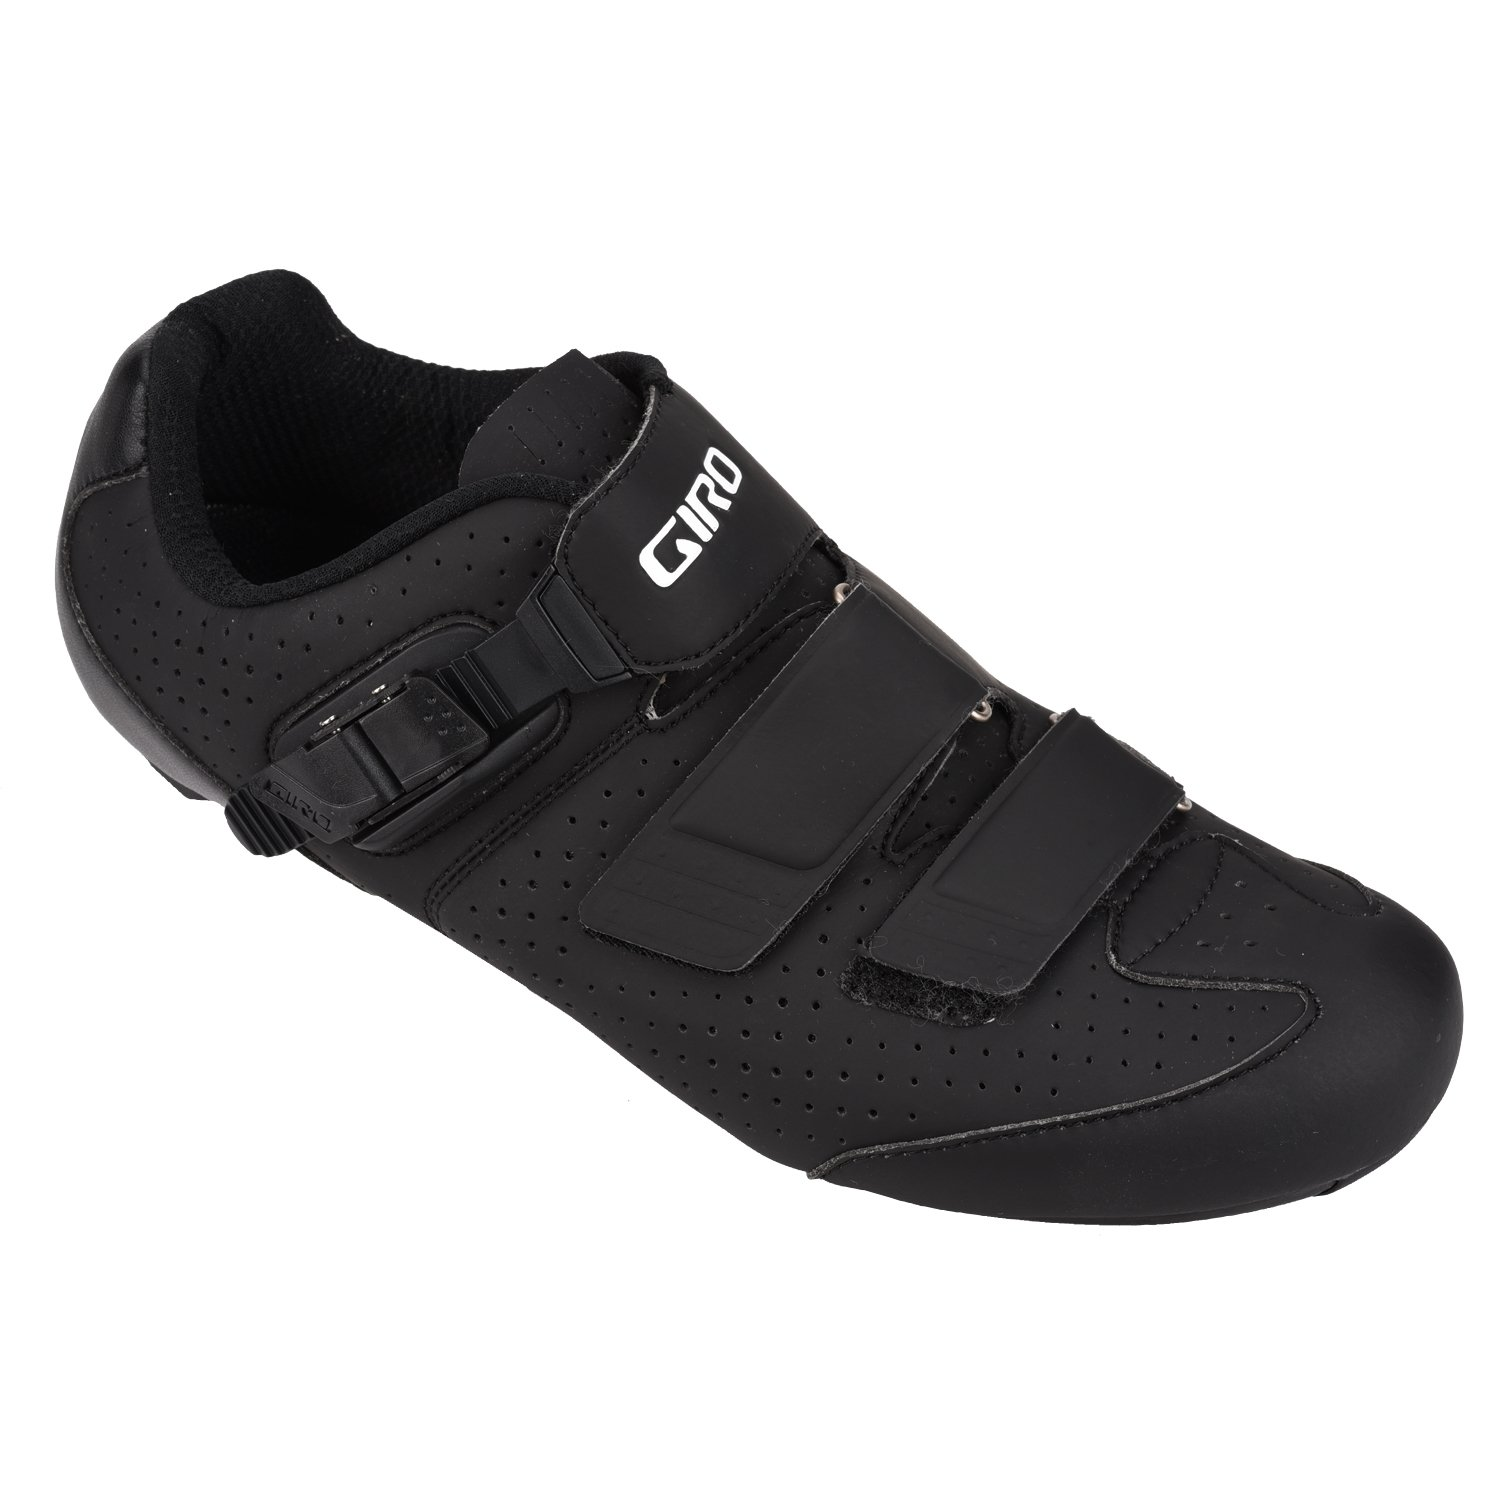 Giro 2016 Men's Trans E70 HV WIDE Road Bike Shoes (Matte Black/Black - 42) by Giro